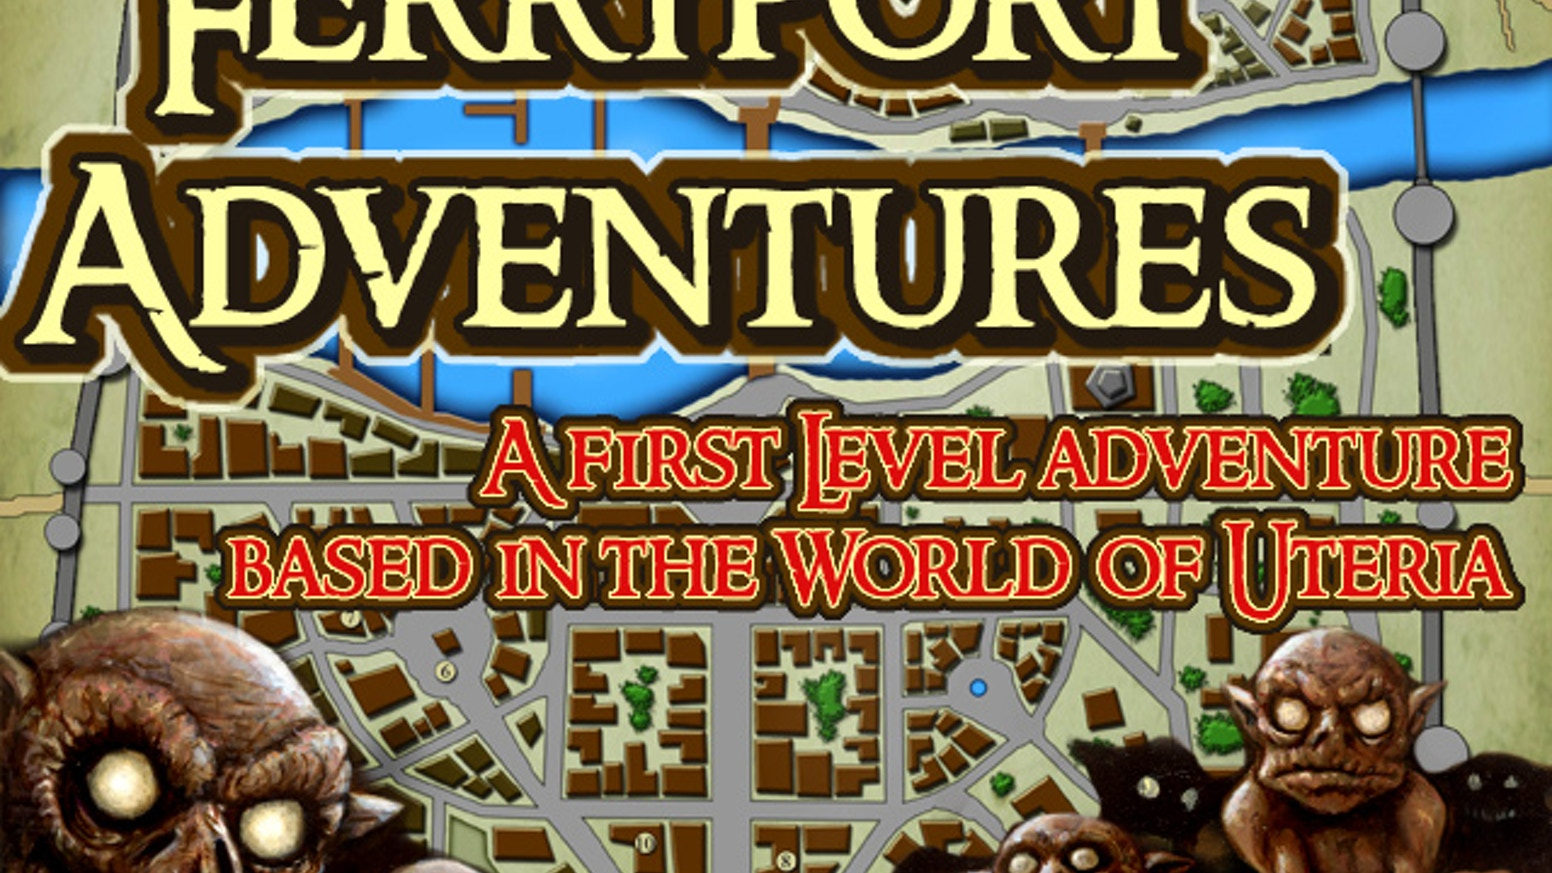 Help fund a deluxe printed version of the Ferryport Adventures, a 1st level Pathfinder compatible adventure and city guide.